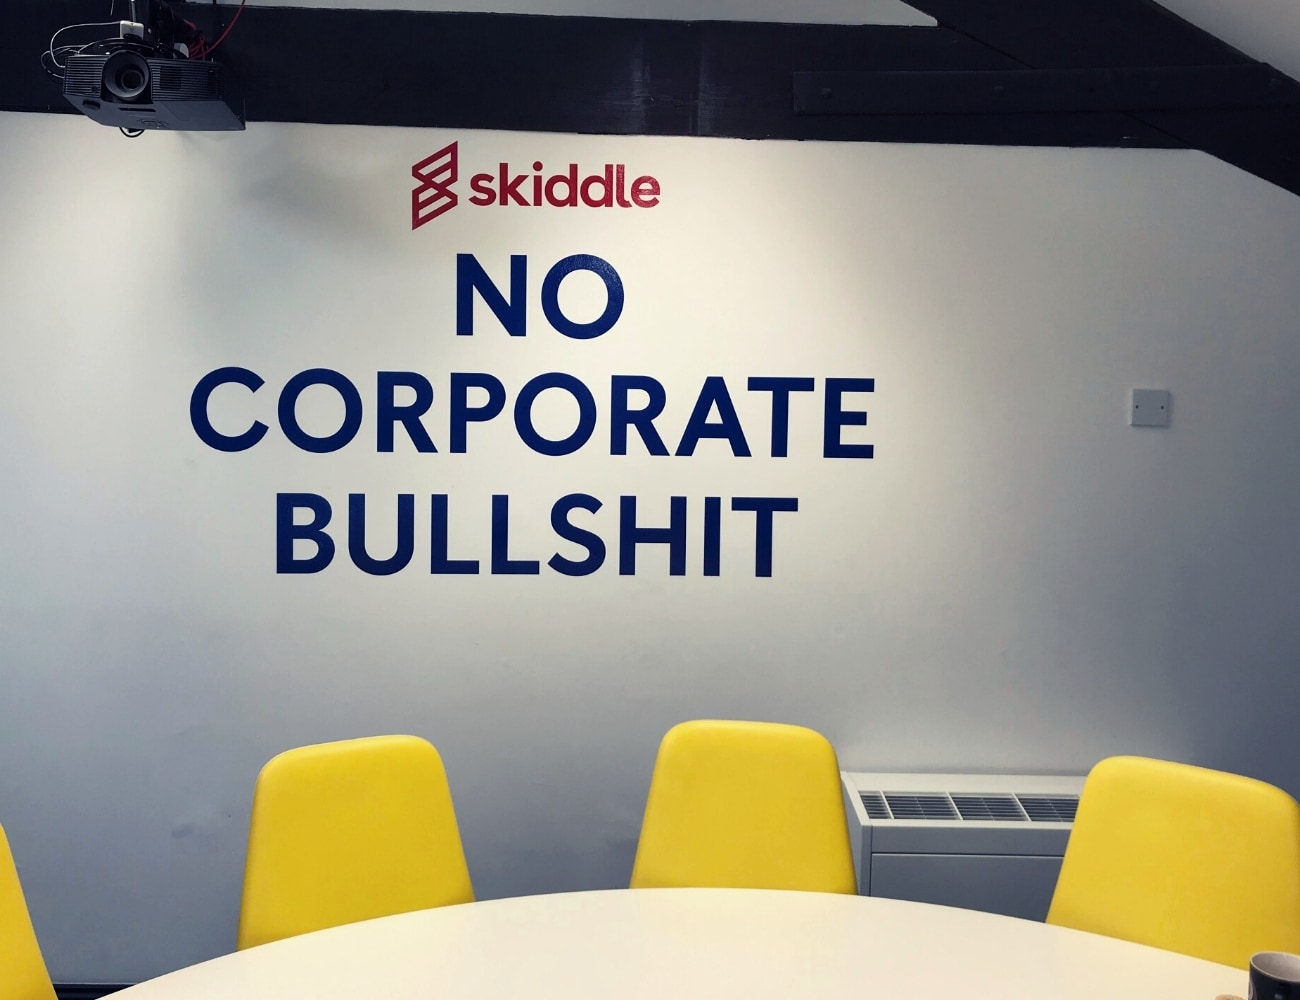 Skiddle Hits10K Reviews and Shares Why Customer Service is #1 for Success